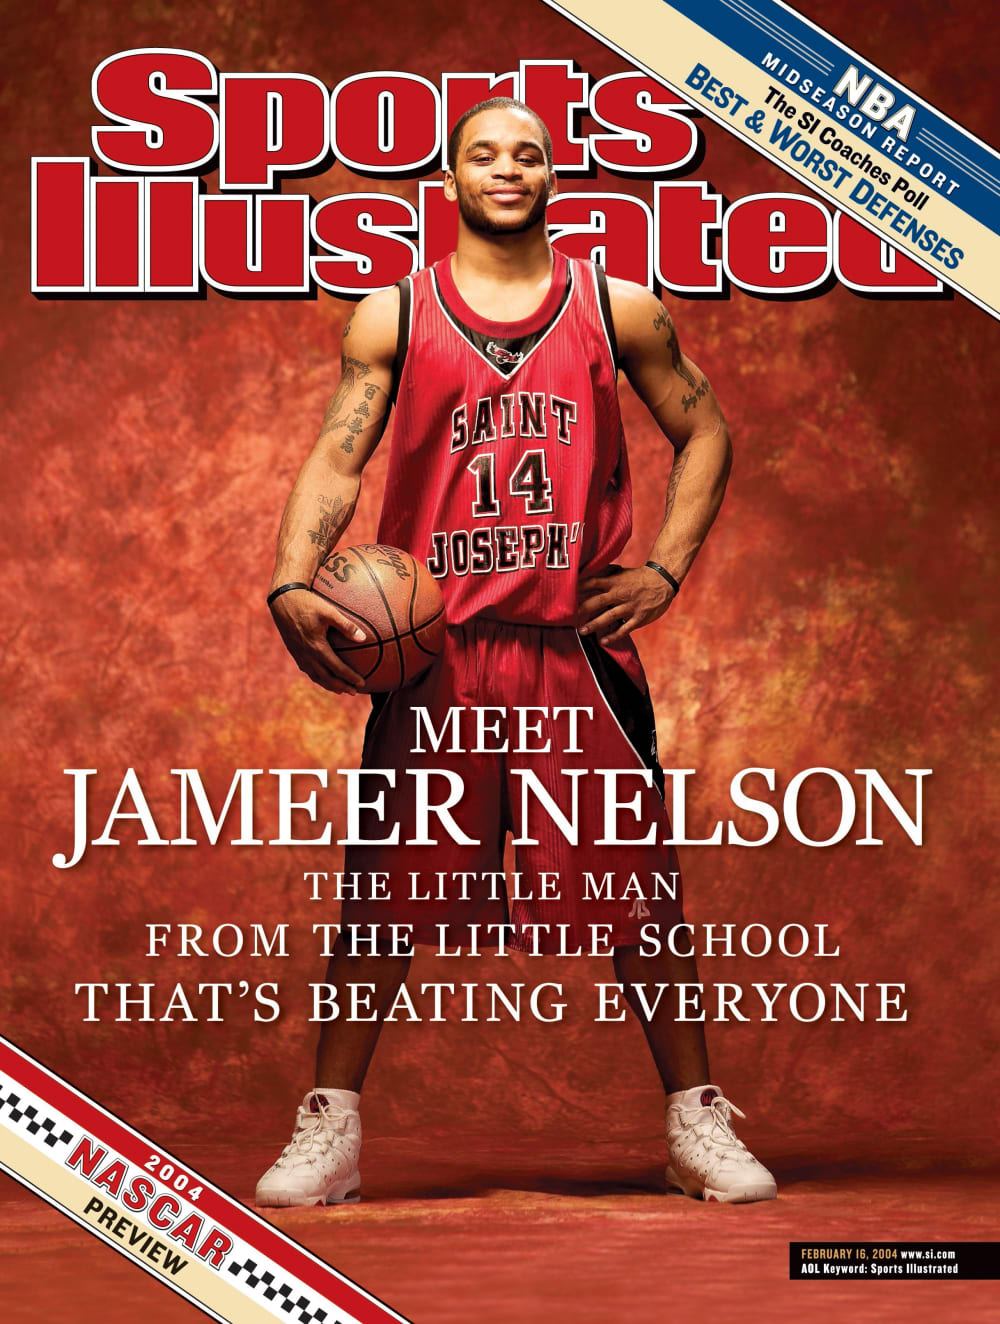 Meet Jameer Nelson: The Little Man From The Little School That's Beating Everyone